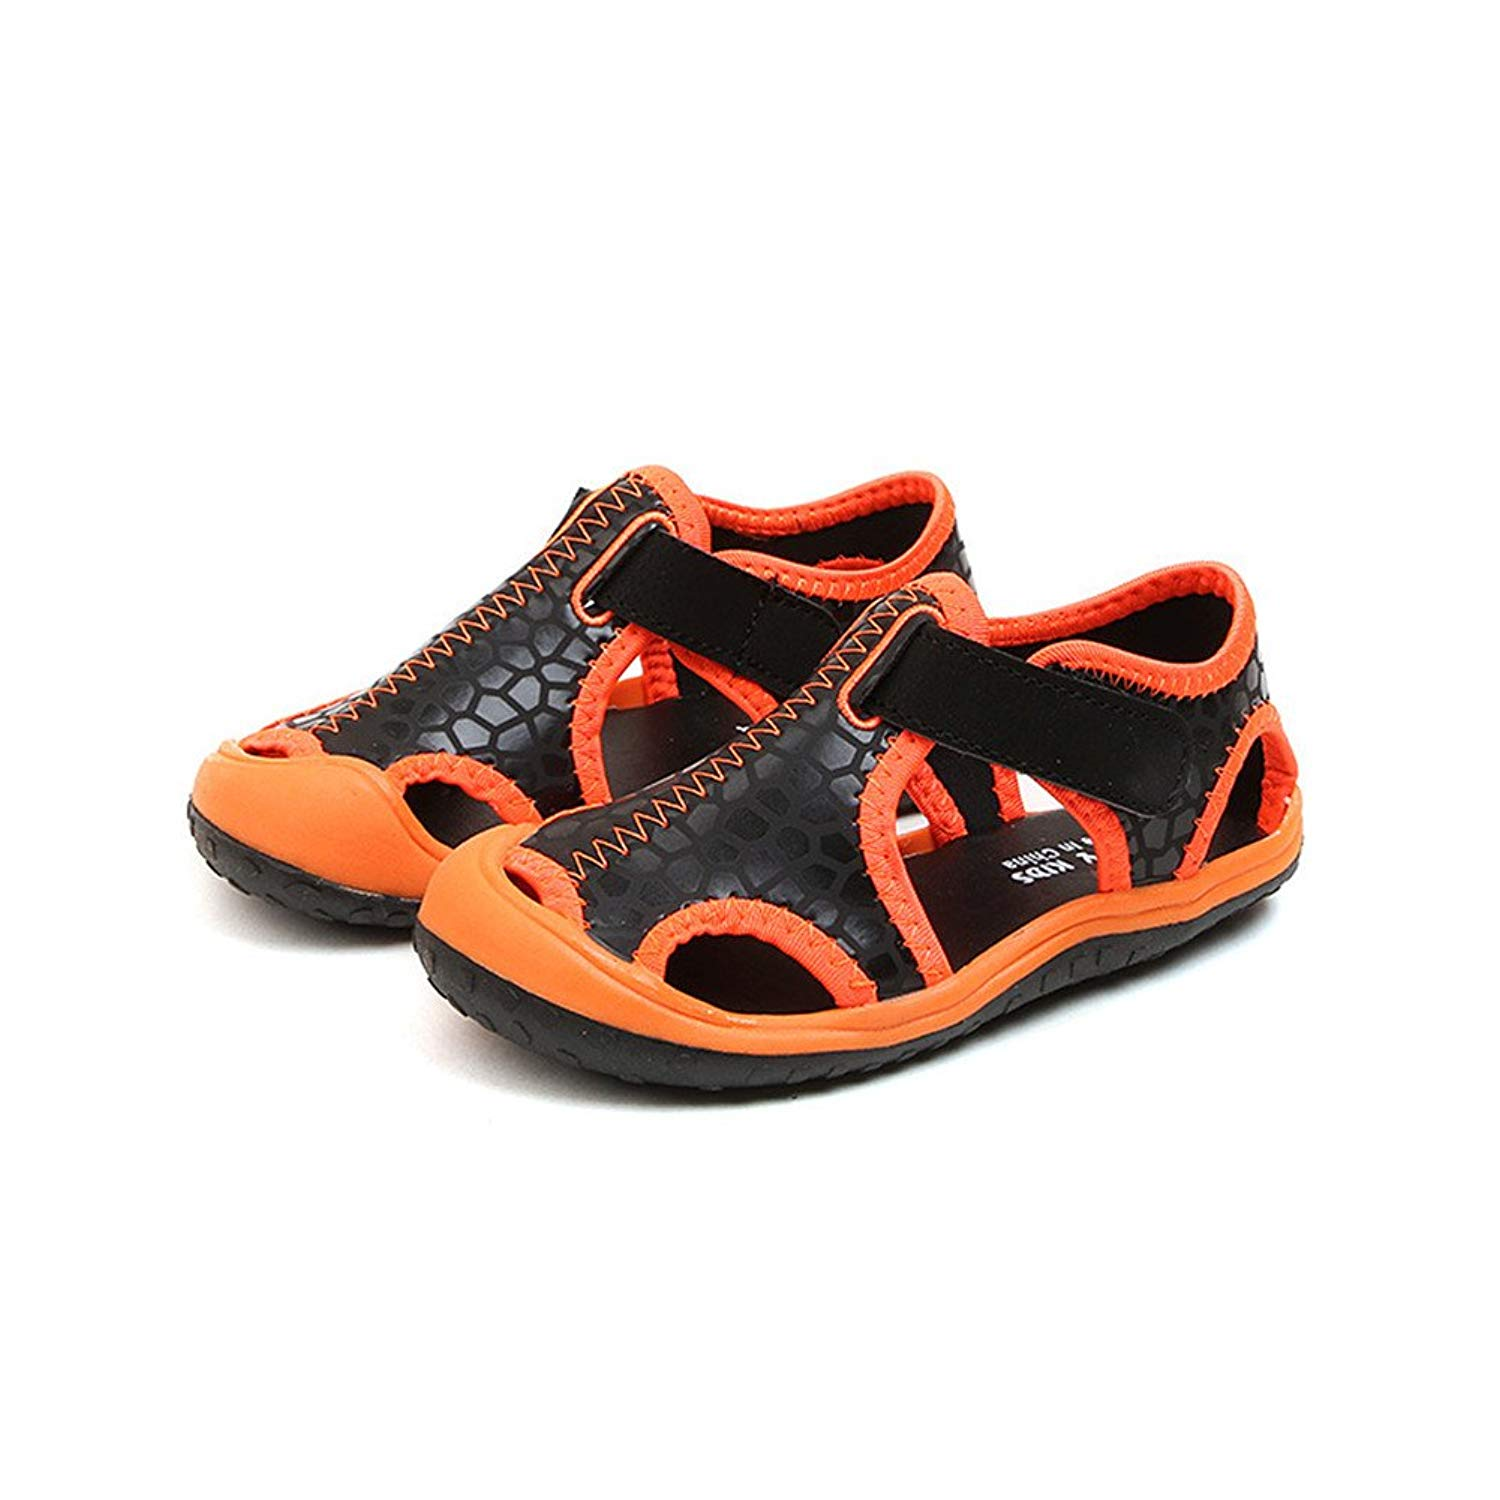 a5c5013f Cheap 7 Water Shoe Outdoor, find 7 Water Shoe Outdoor deals on line ...